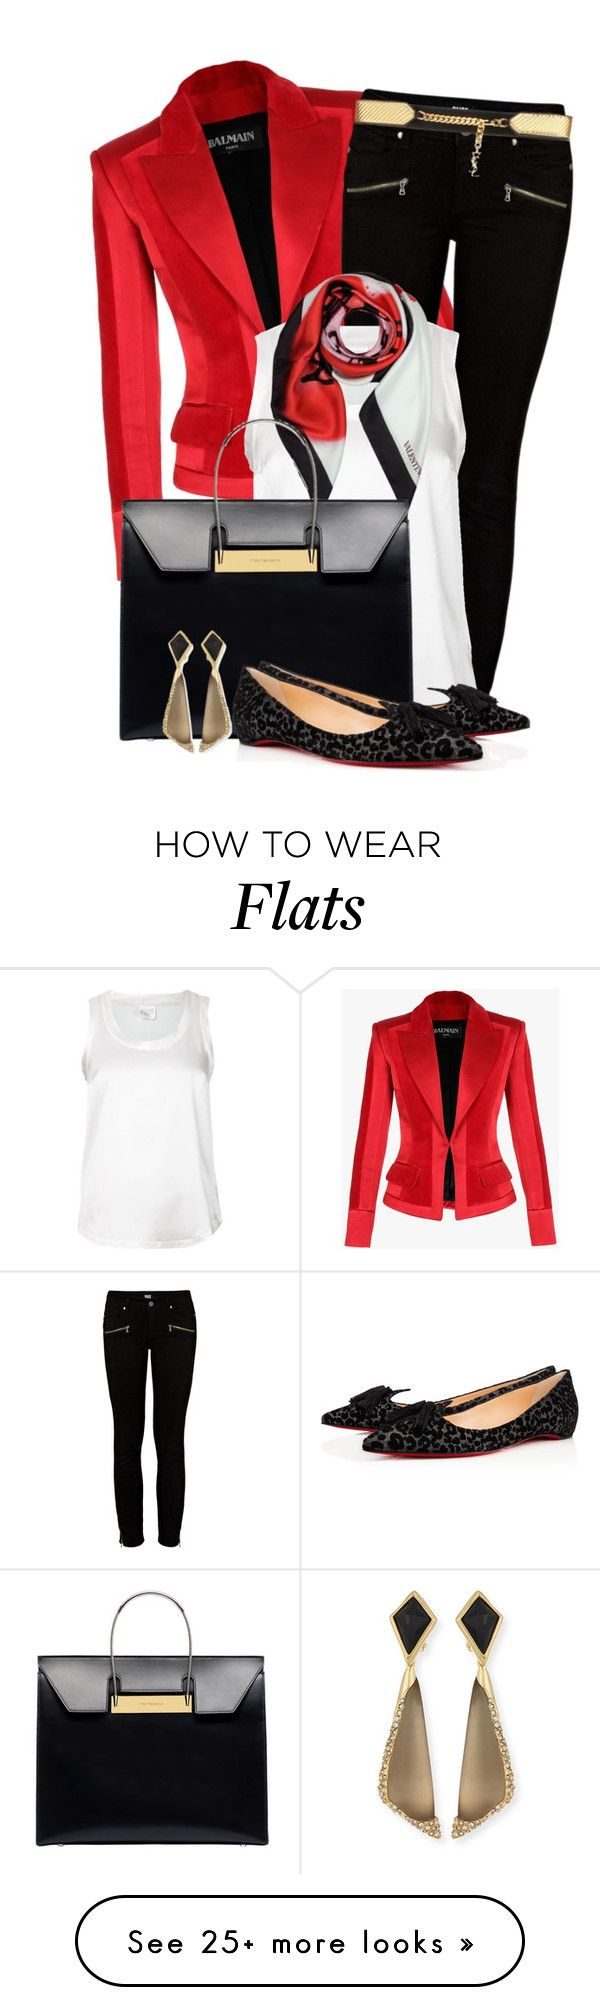 """Untitled #83"" by valentina-a-bb on Polyvore featuring Balmain, Paige Denim, Brunello Cucinelli, Valentino, Balenciaga, Yves Saint Laurent, Christian Louboutin and Alexis Bittar"